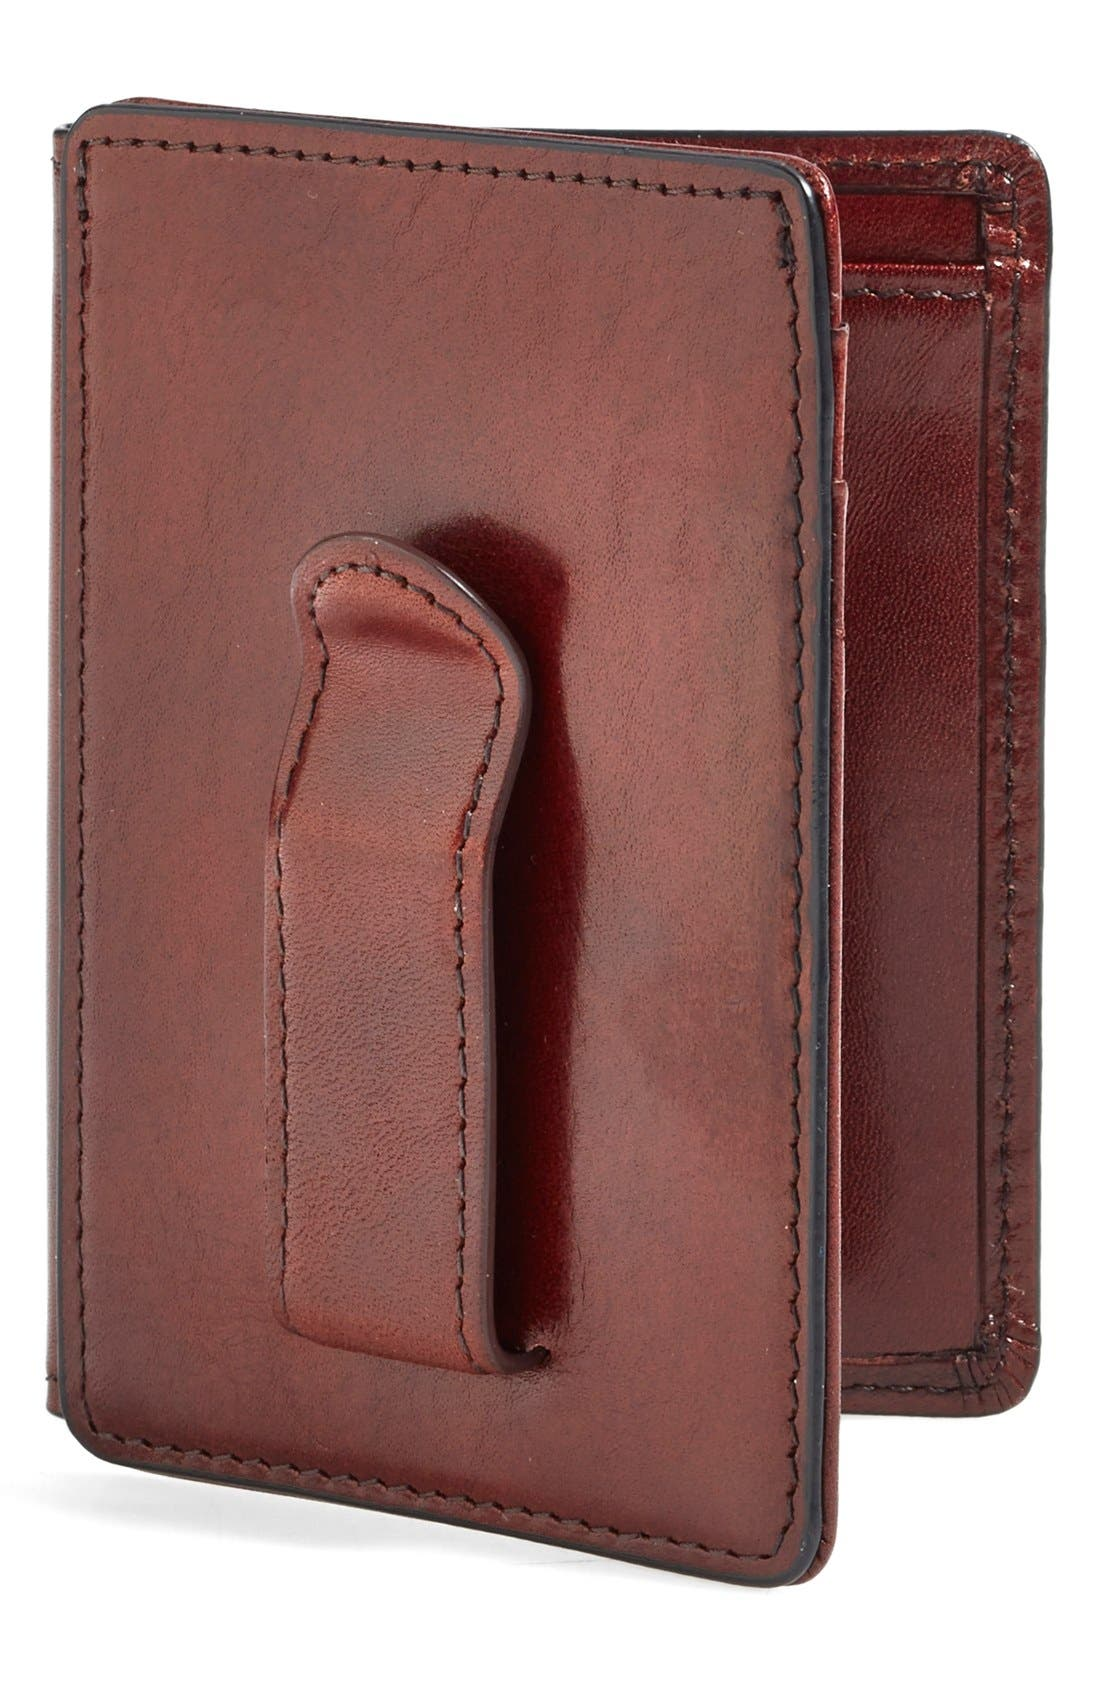 'Old Leather' Front Pocket ID Wallet,                             Main thumbnail 1, color,                             DARK BROWN